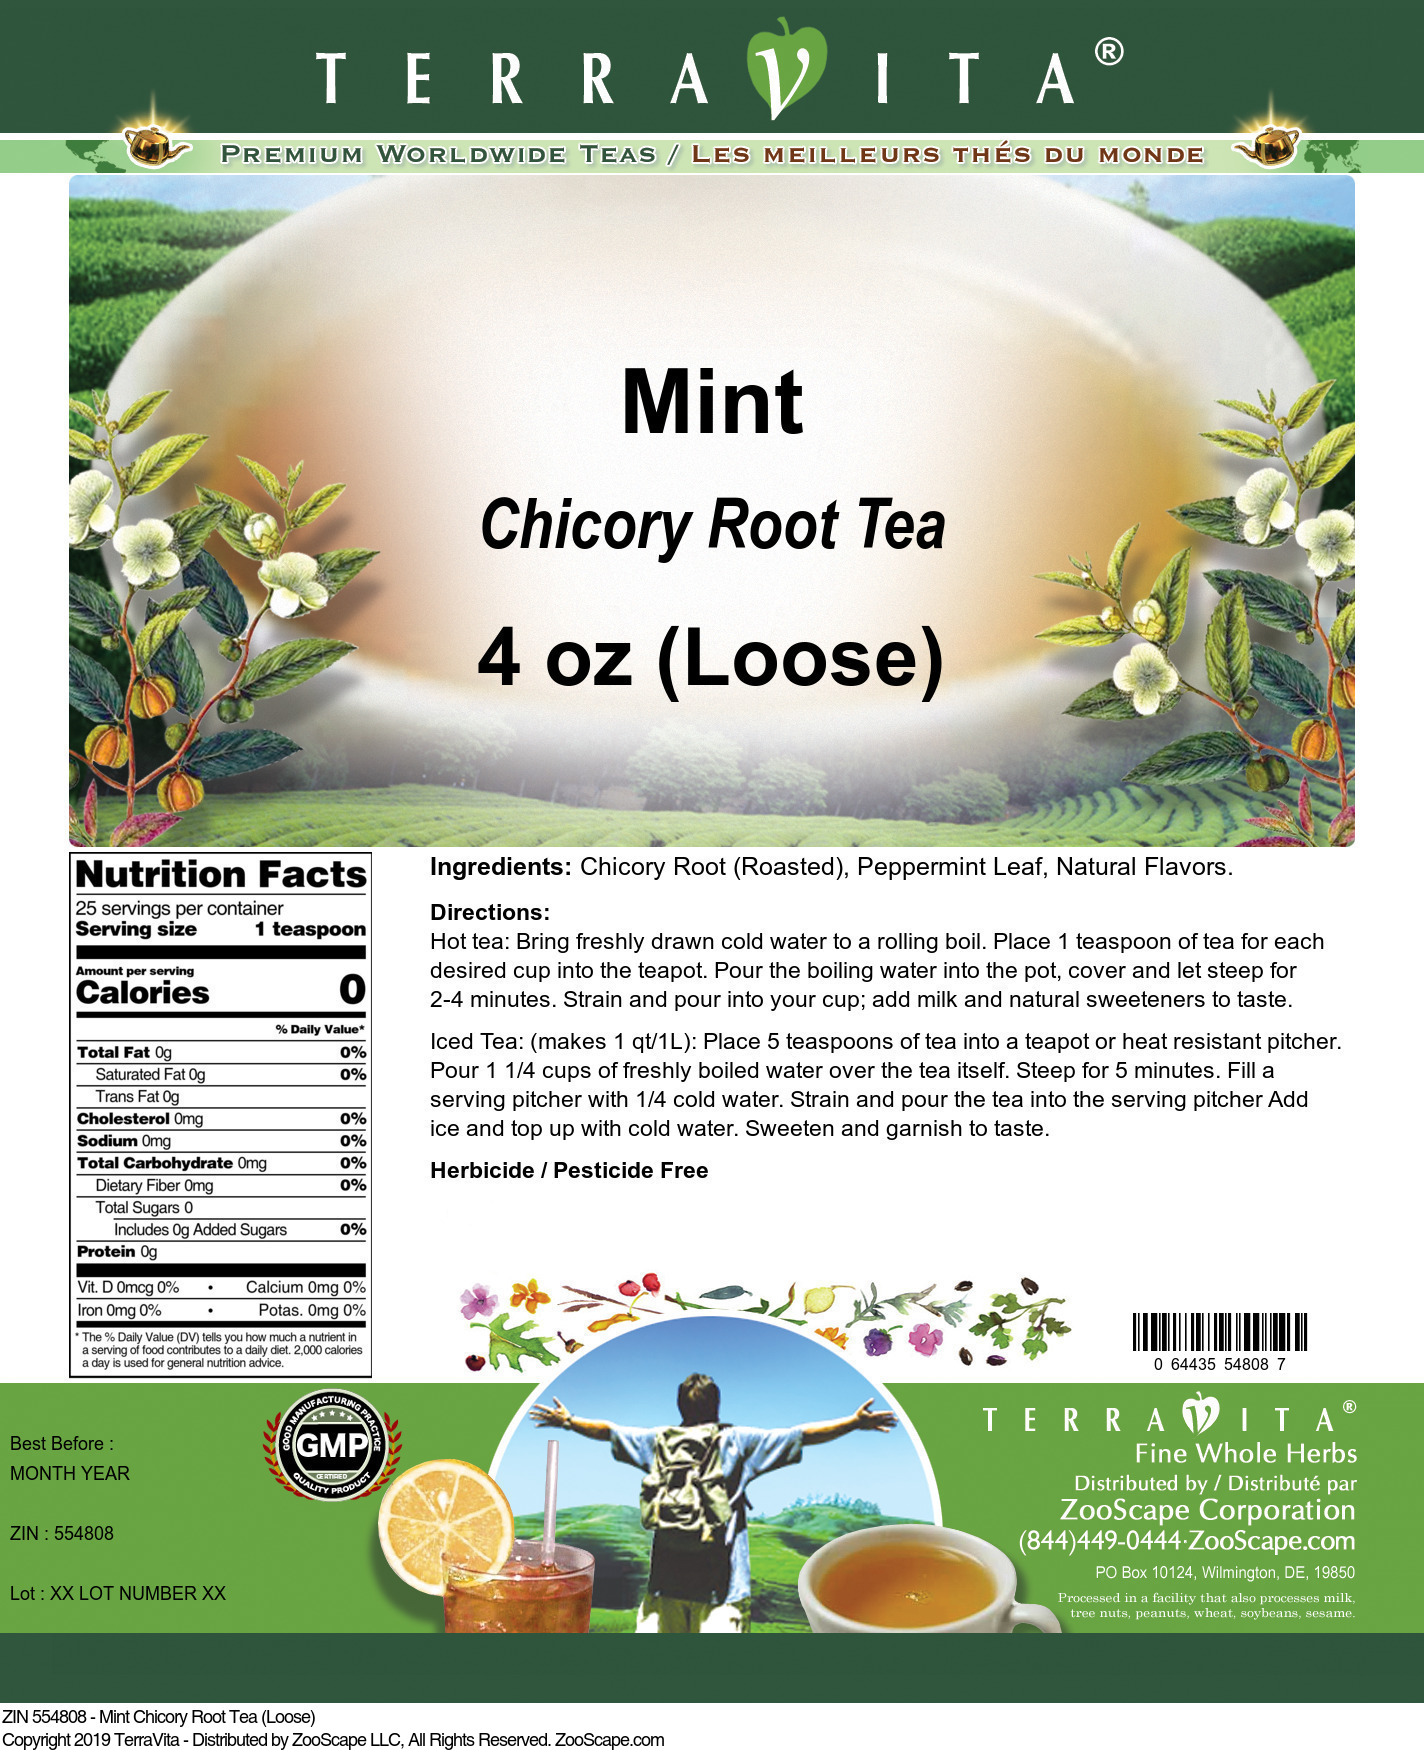 Mint Chicory Root